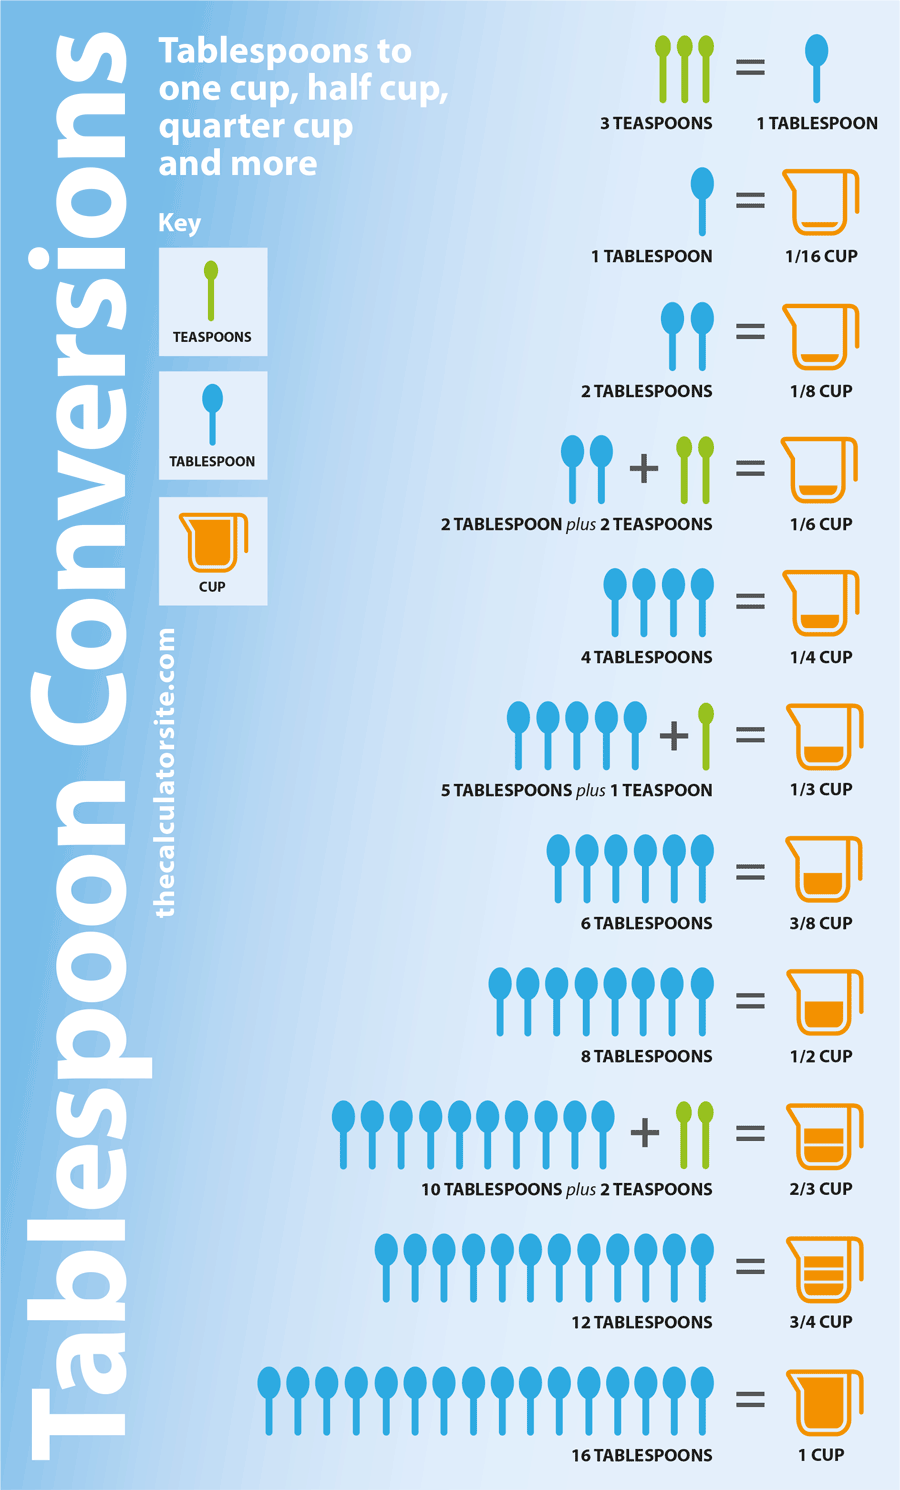 Cups to tablespoons conversion chart